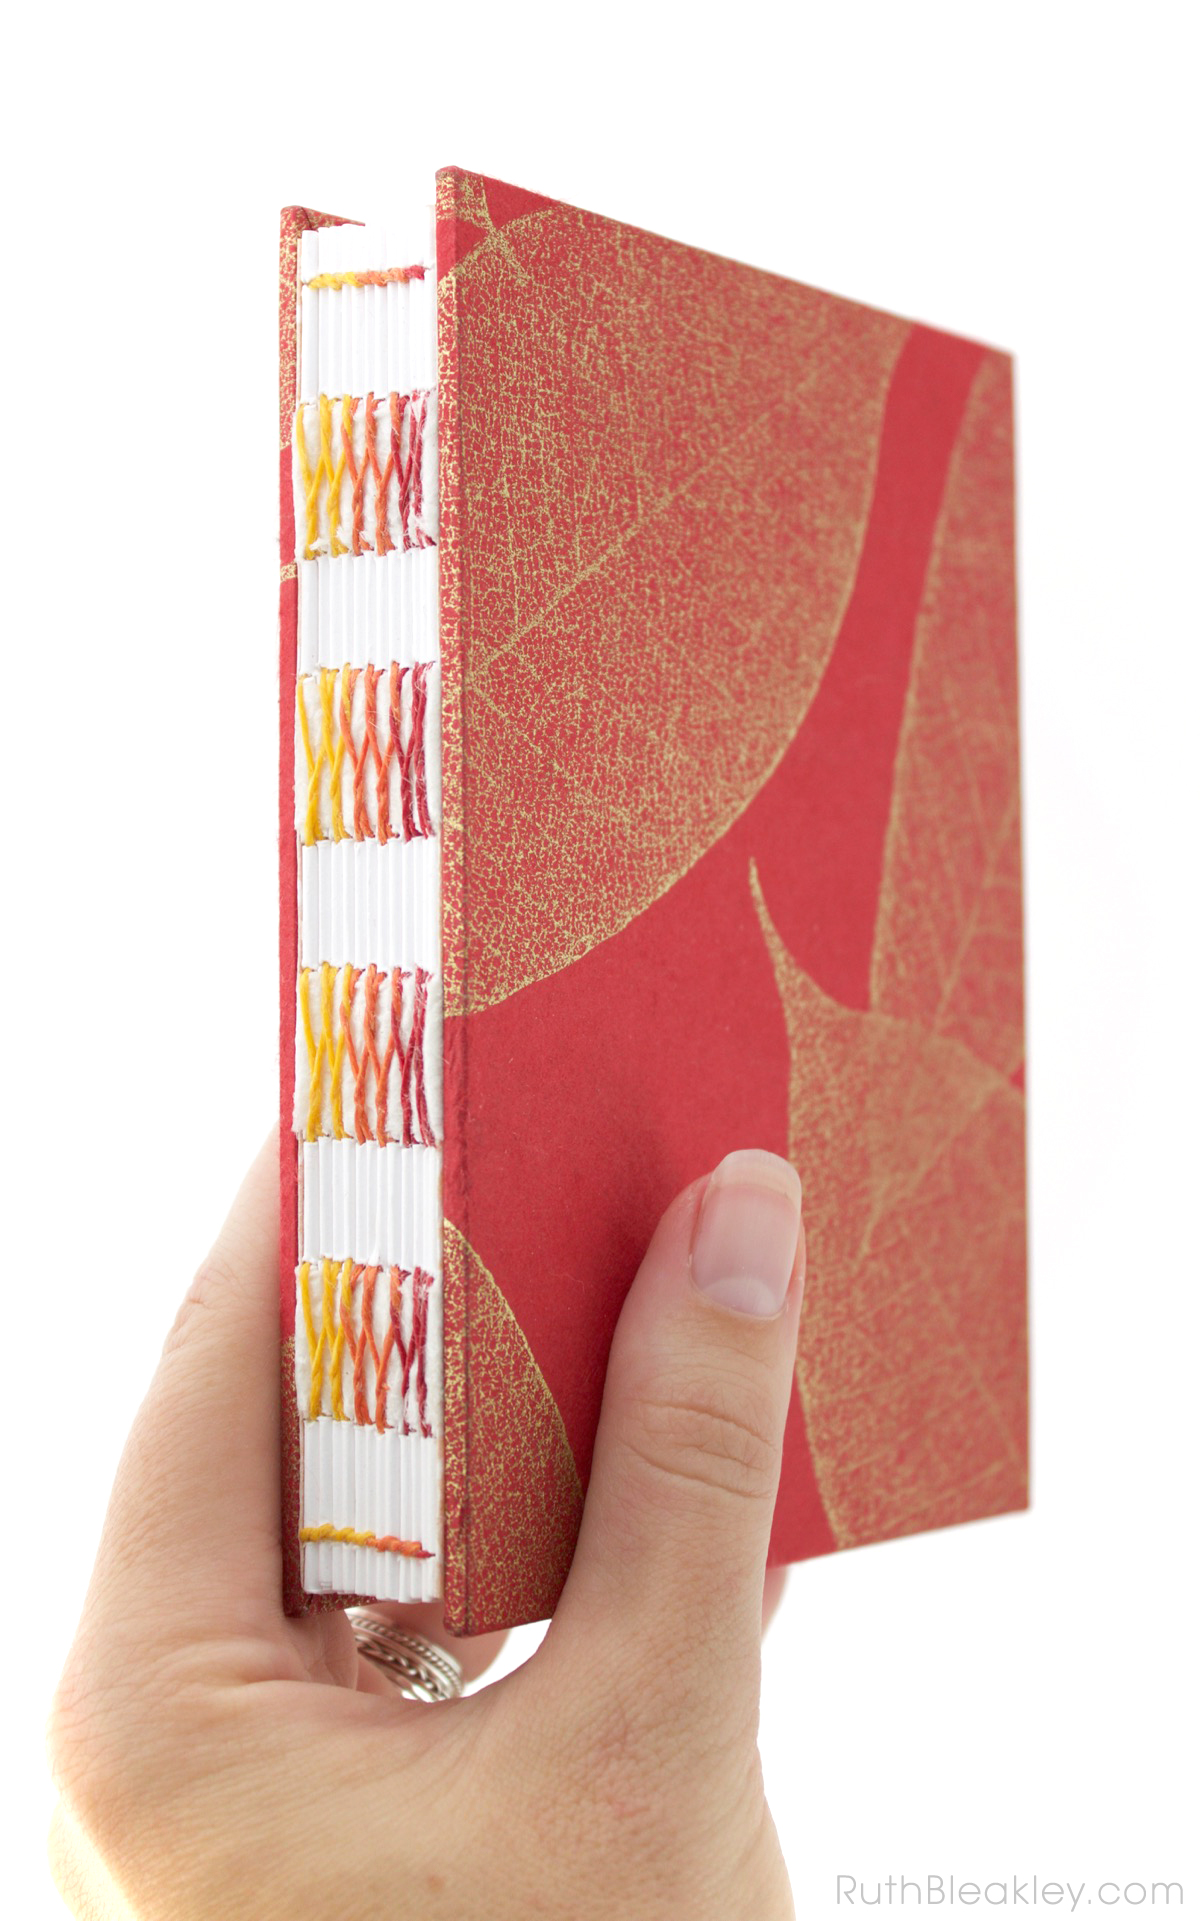 Red Leaf French Link Journal handmade by bookbinder Ruth Bleakley - 6